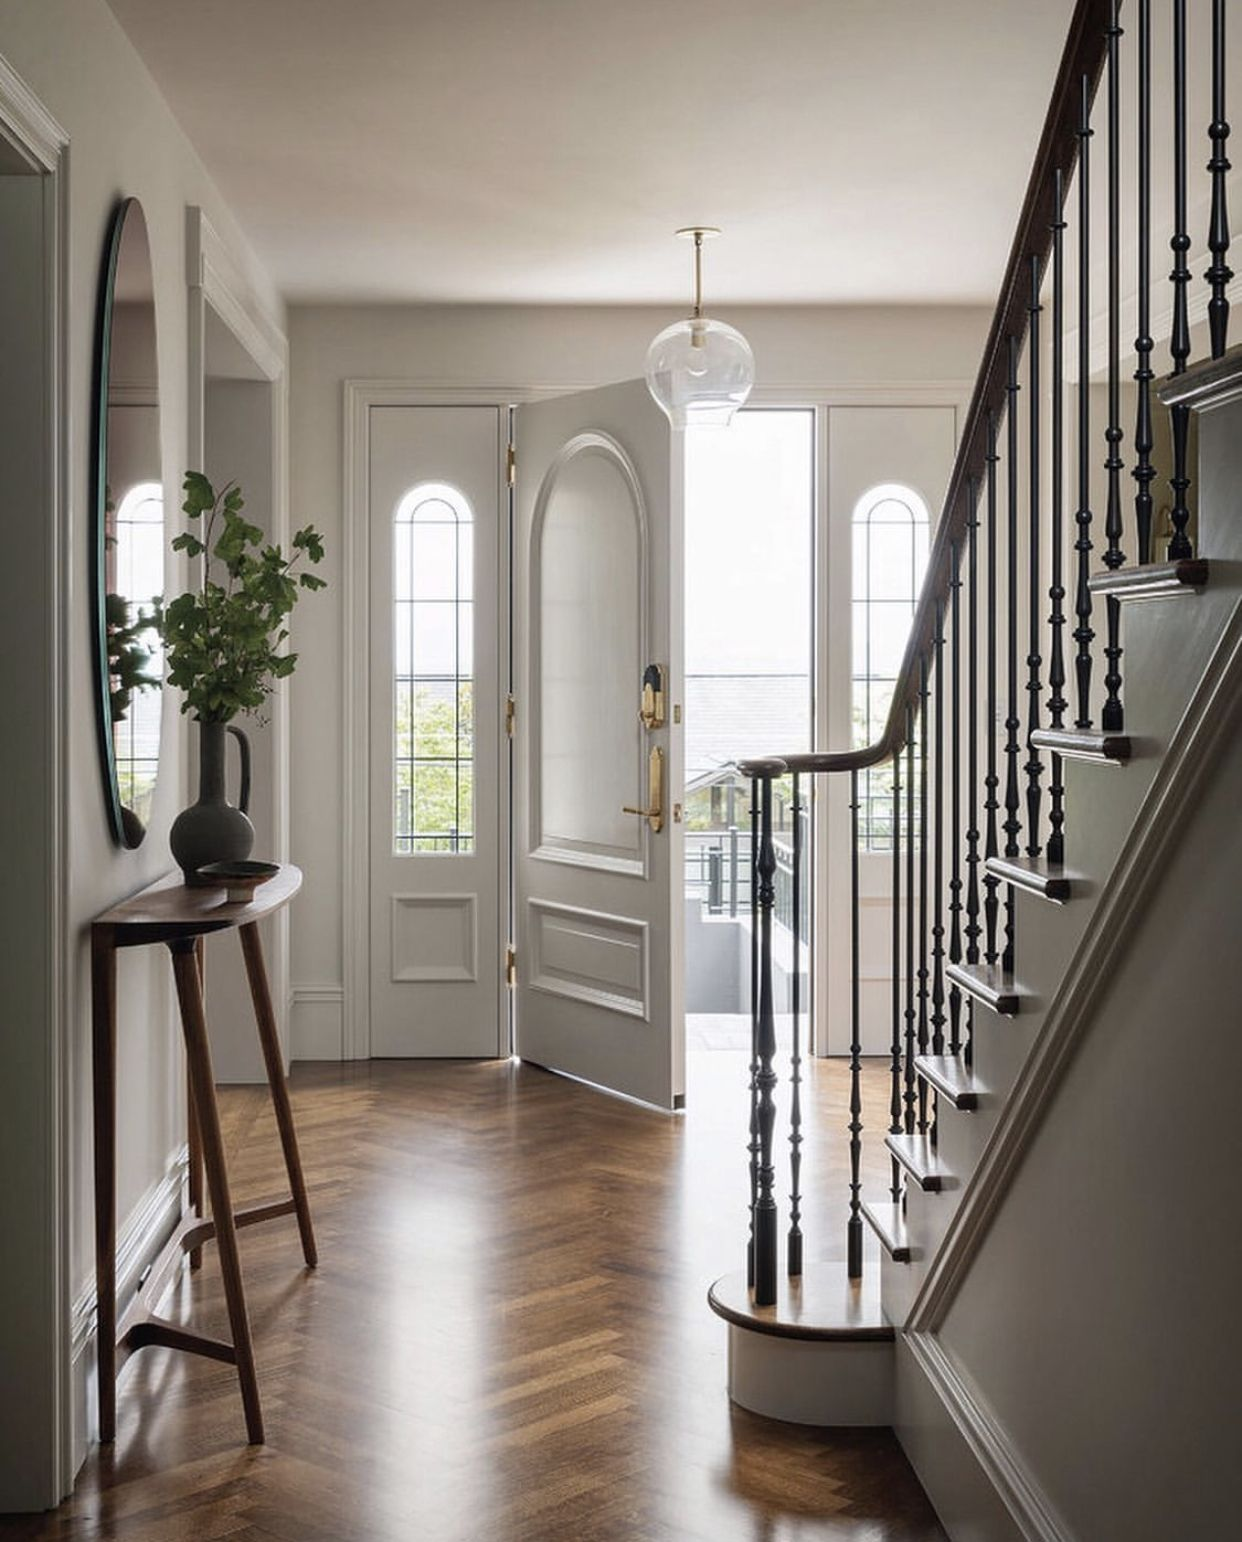 Pin by Nicole & Dianne on Favorite Places & Spaces in 2020